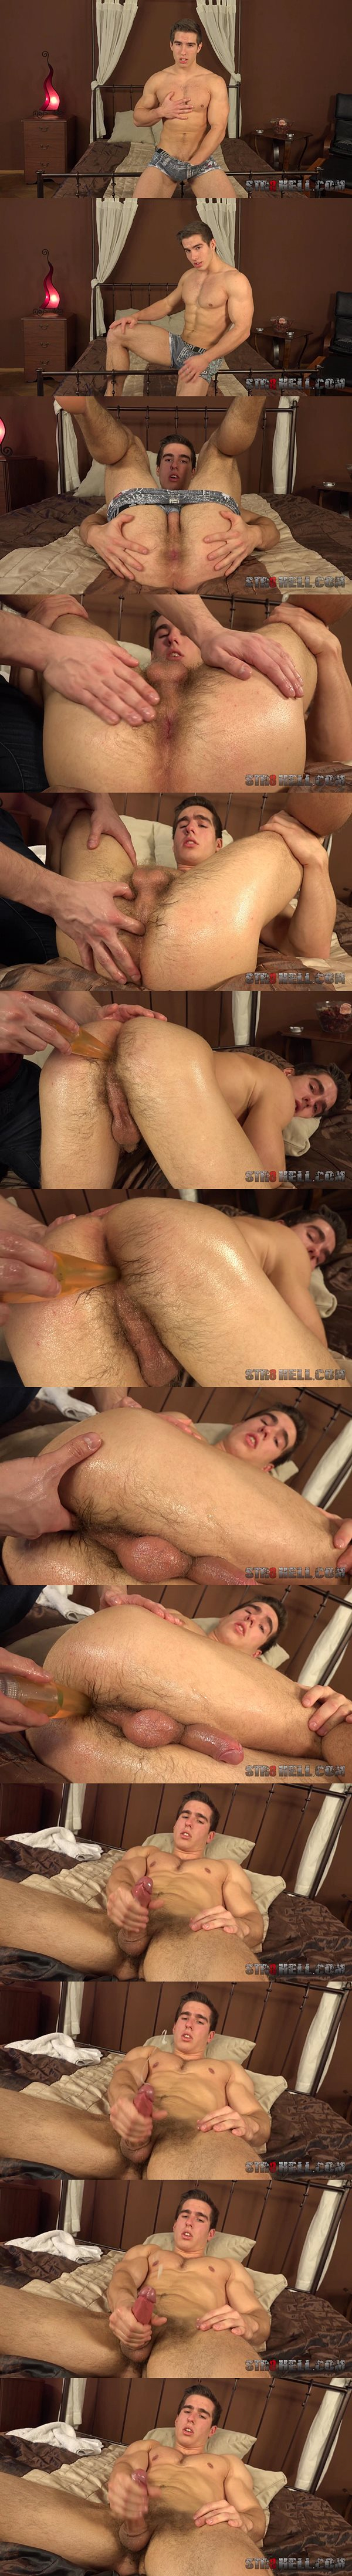 Super hot straight muscle jock Erik Drda gets his tight virgin ass finger and dildo fucked before he jerks off at Str8hell